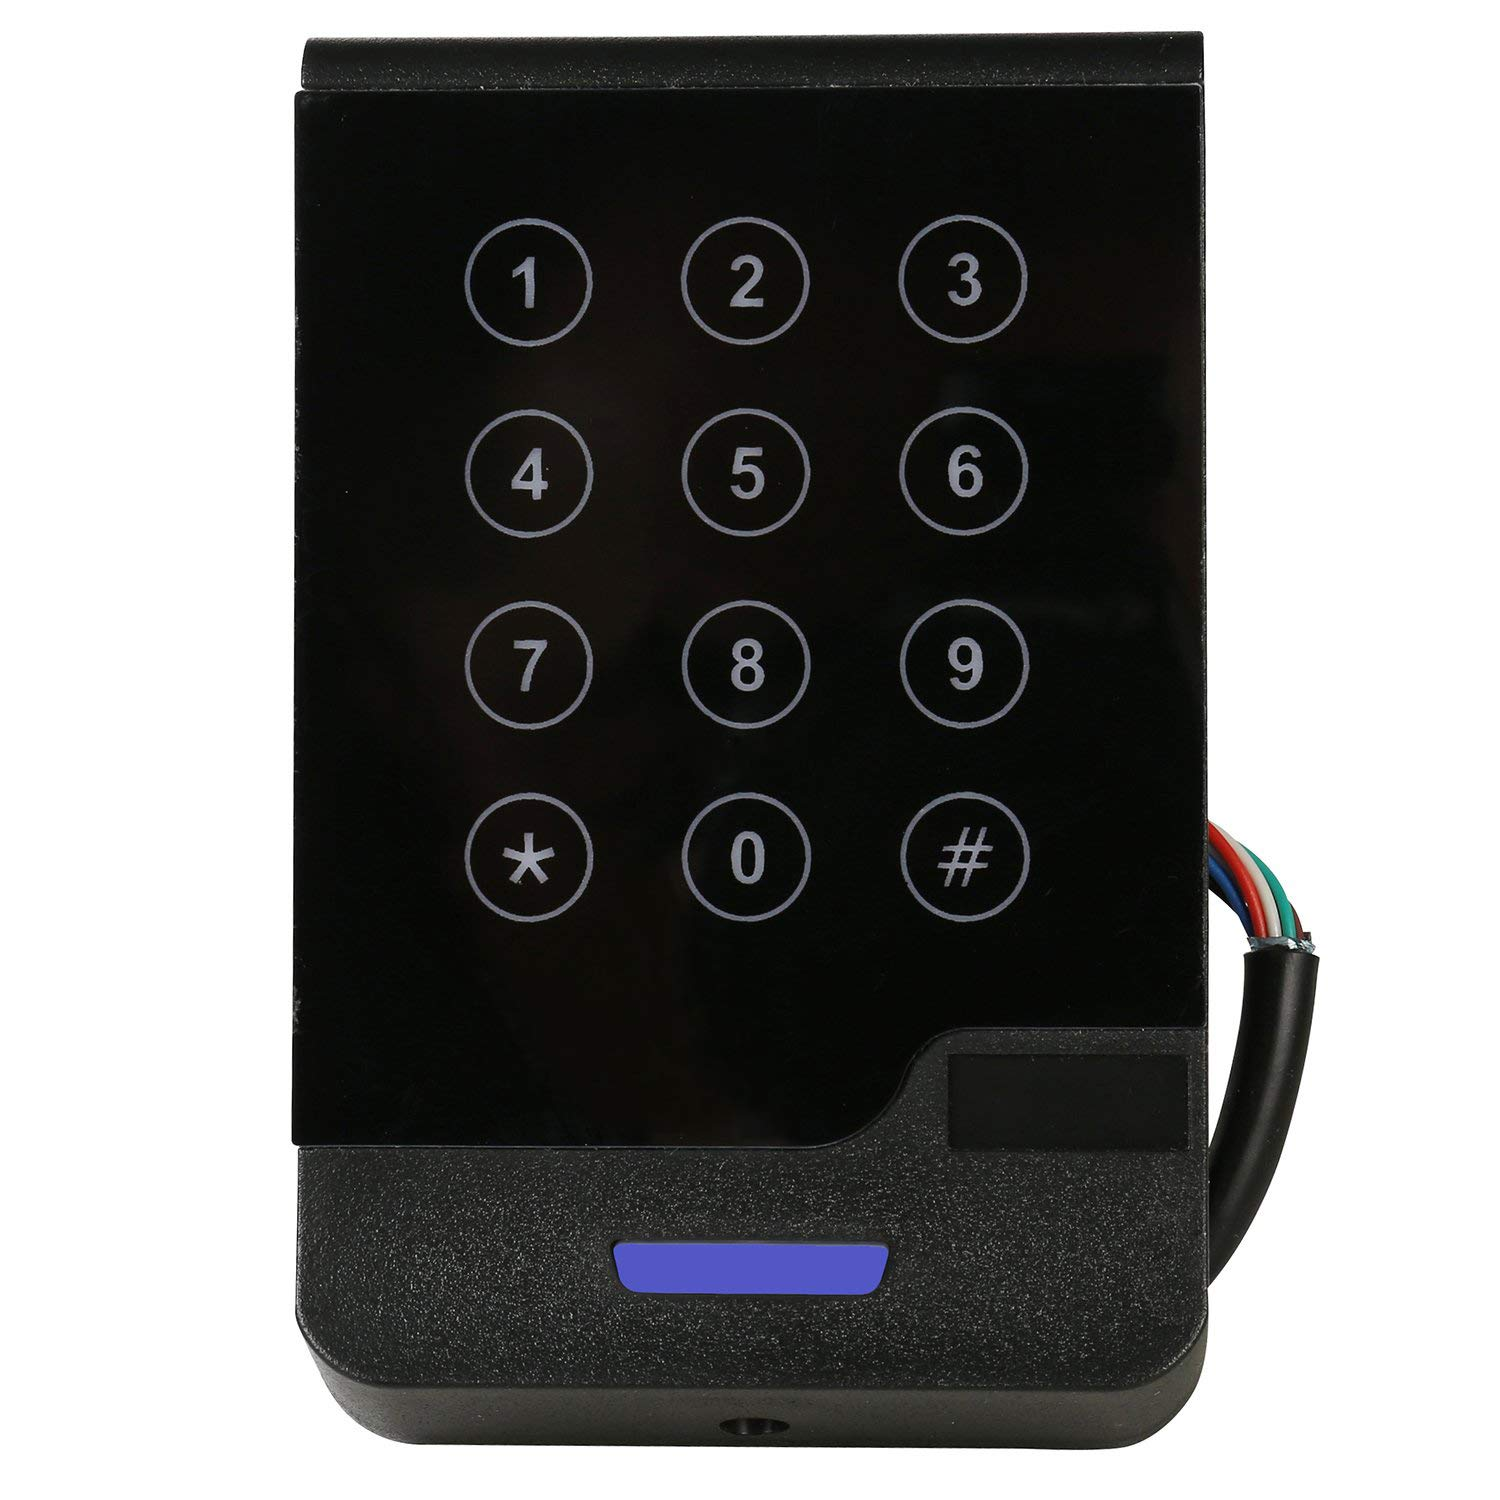 HWMATE Portable Contactless RFID ISO14443A 13.56Mhz IC Card USB Reader Support M1 S50 S70 Ouput 8 Digit Decimal